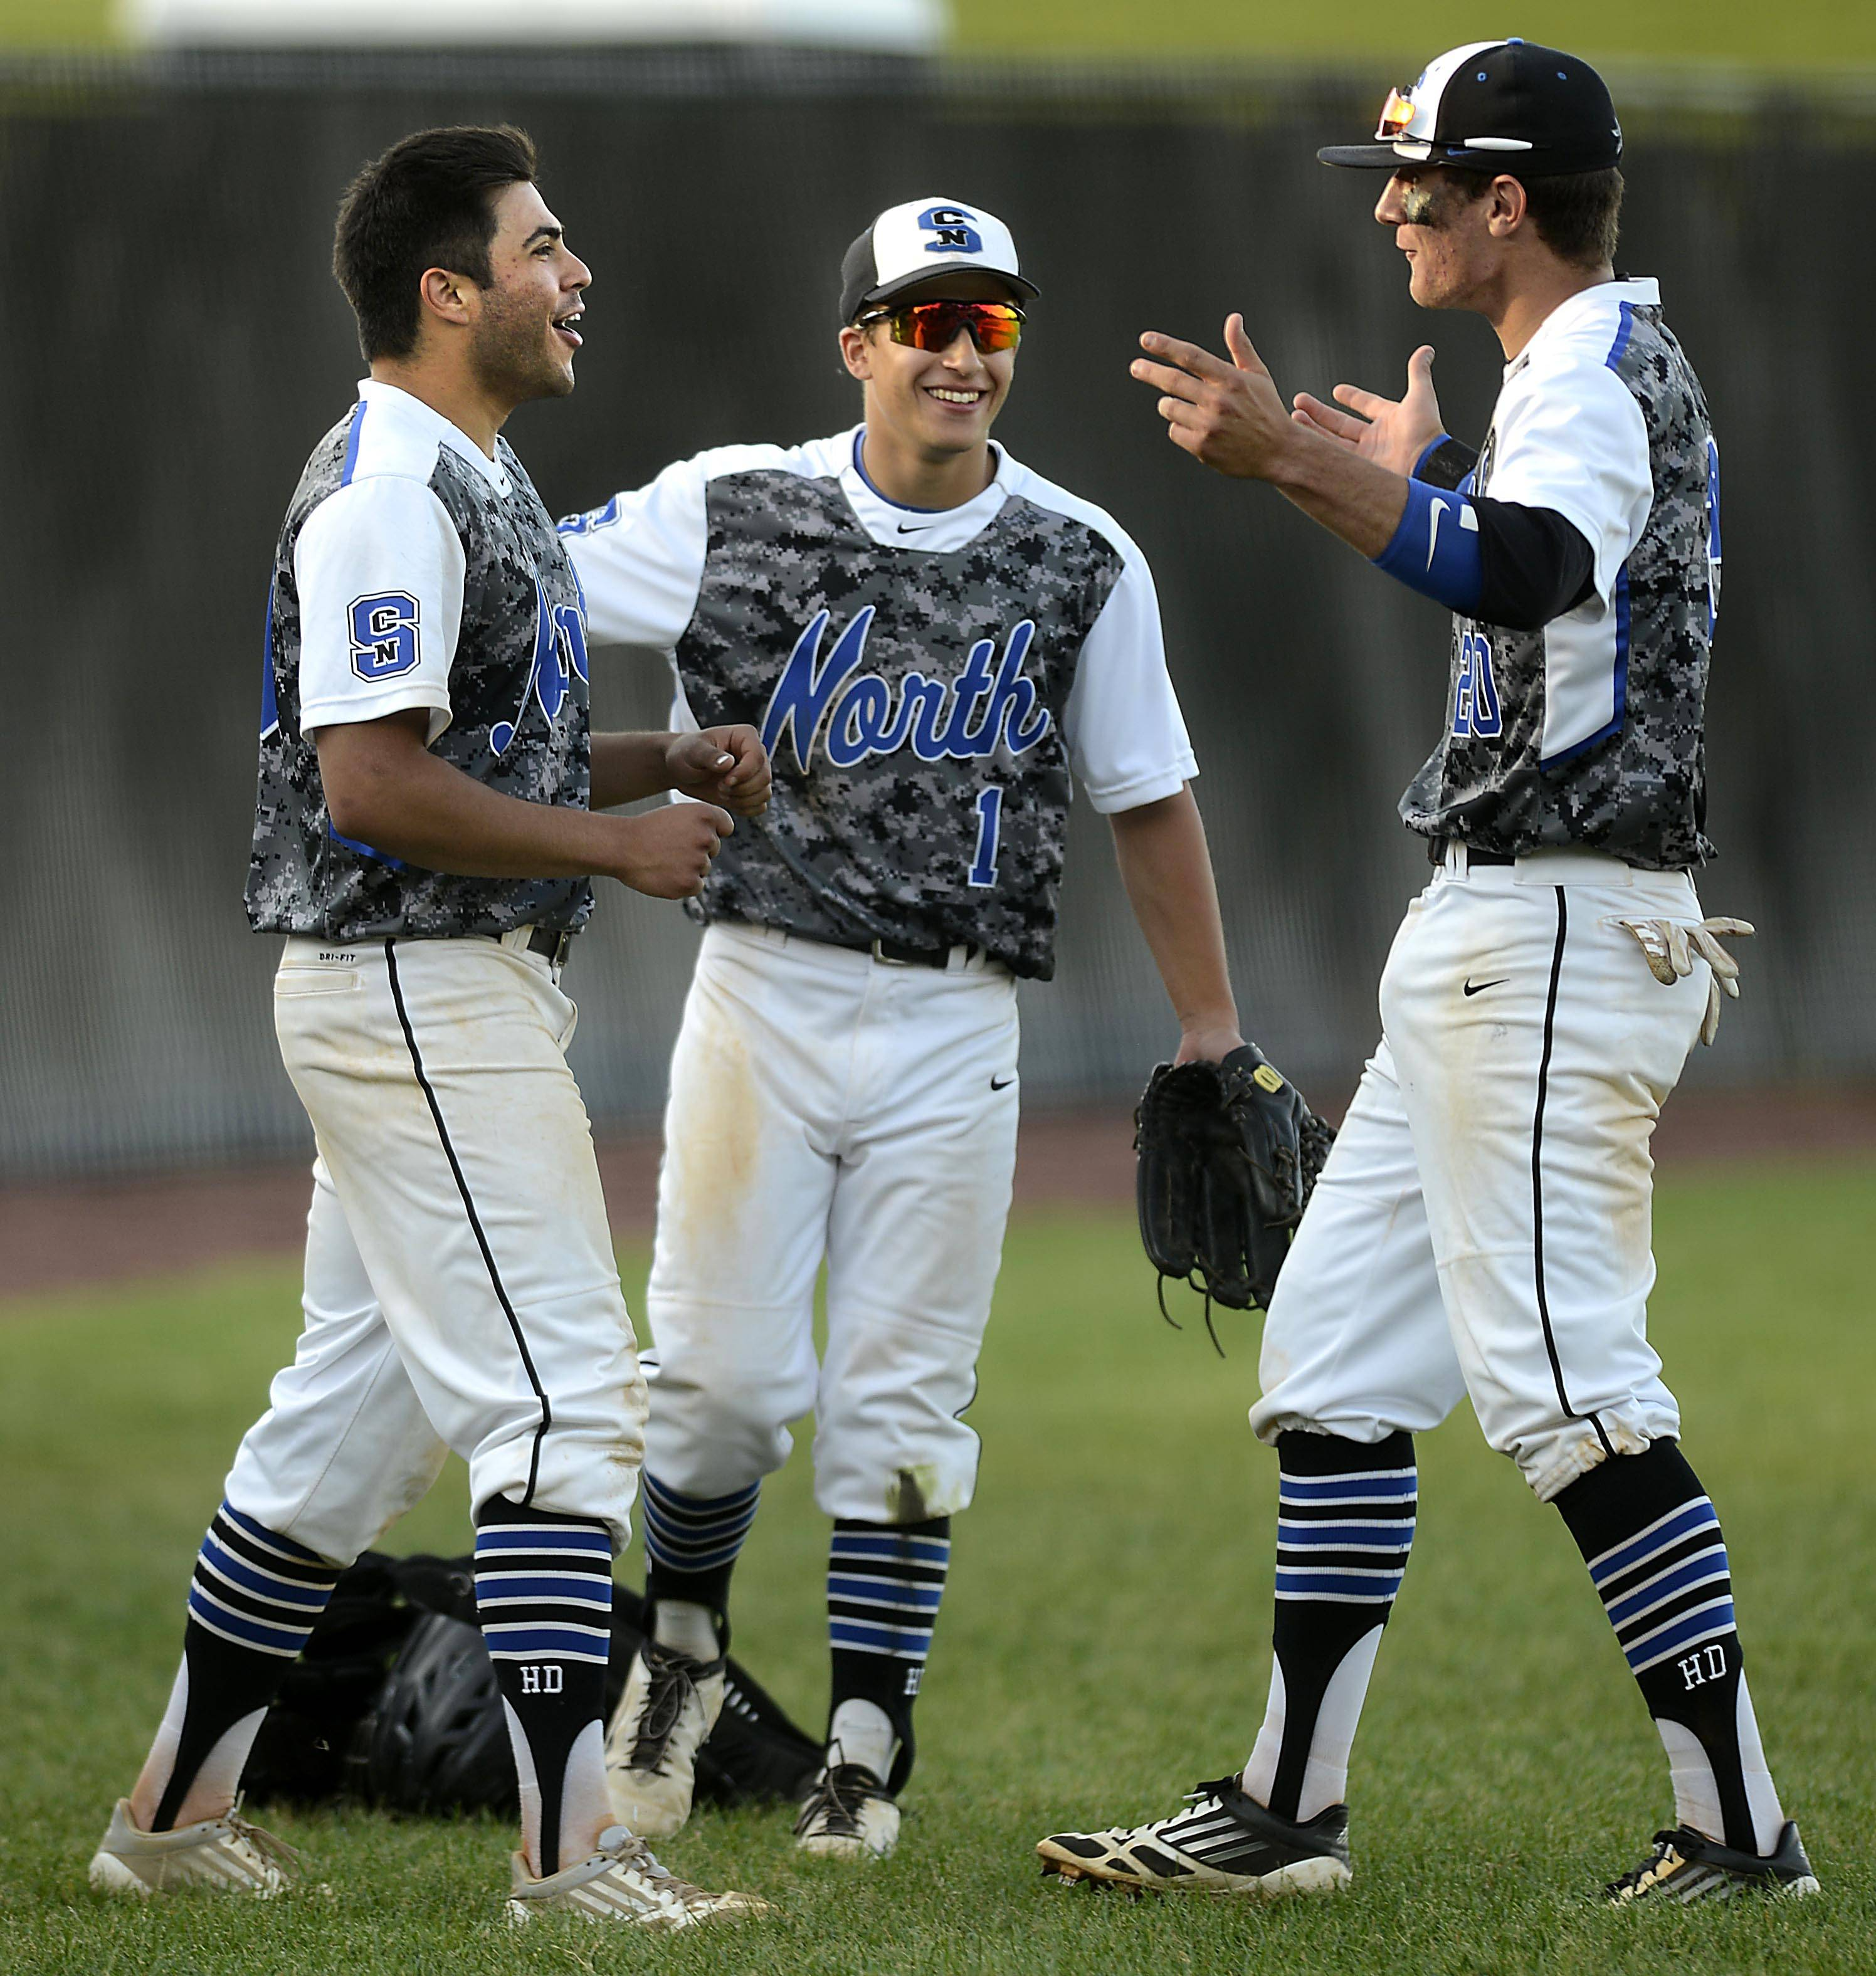 St. Charles North starting pitcher Frankie Farry, left, and teammates Anthony Lambert and Cory Wright, right, celebrate their win against Glenbard East in the regional semifinal game in St. Charles.